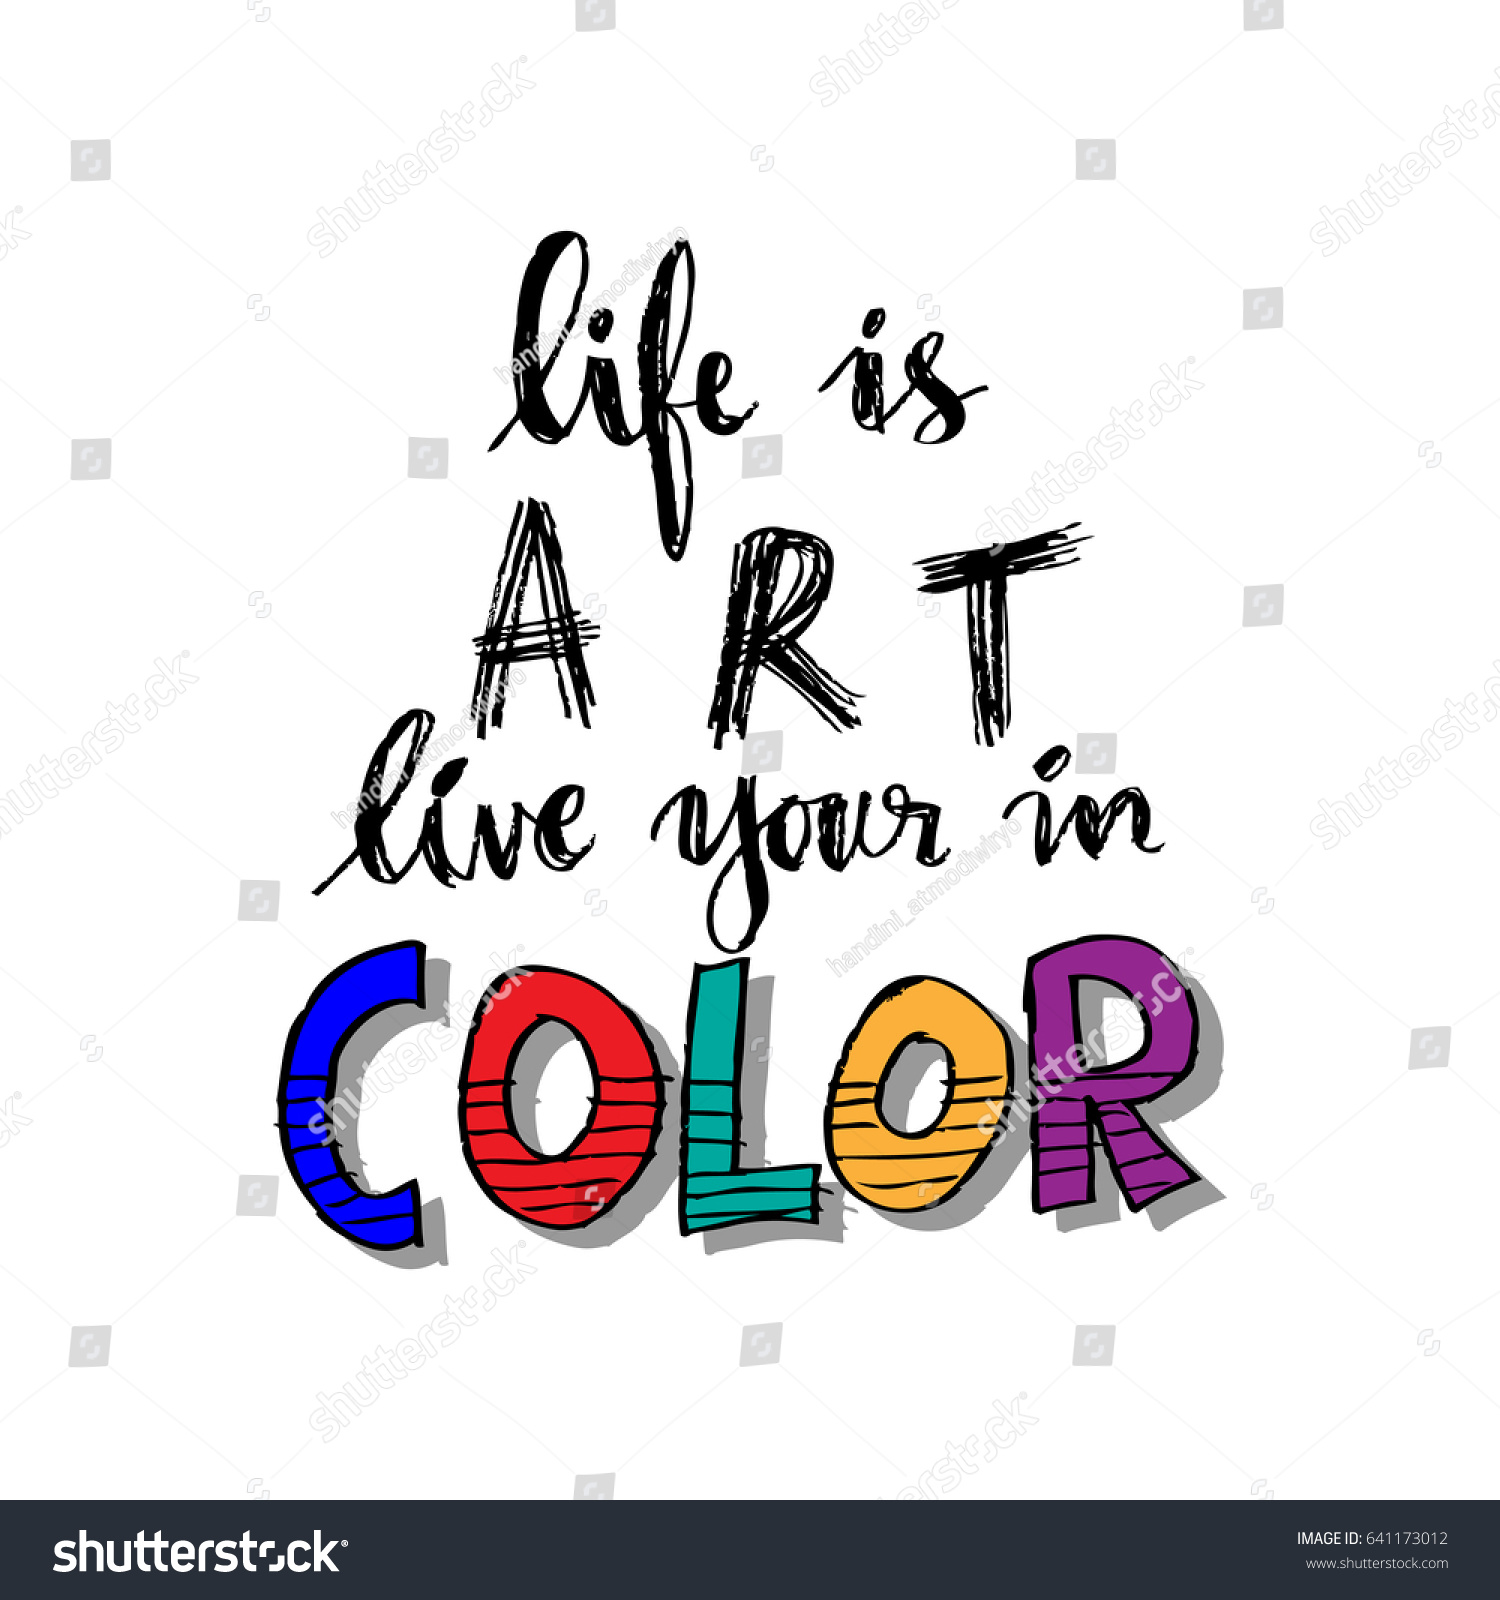 Color Your Life Quotes Life Art Live Your Color Hand Stock Vector 641173012  Shutterstock